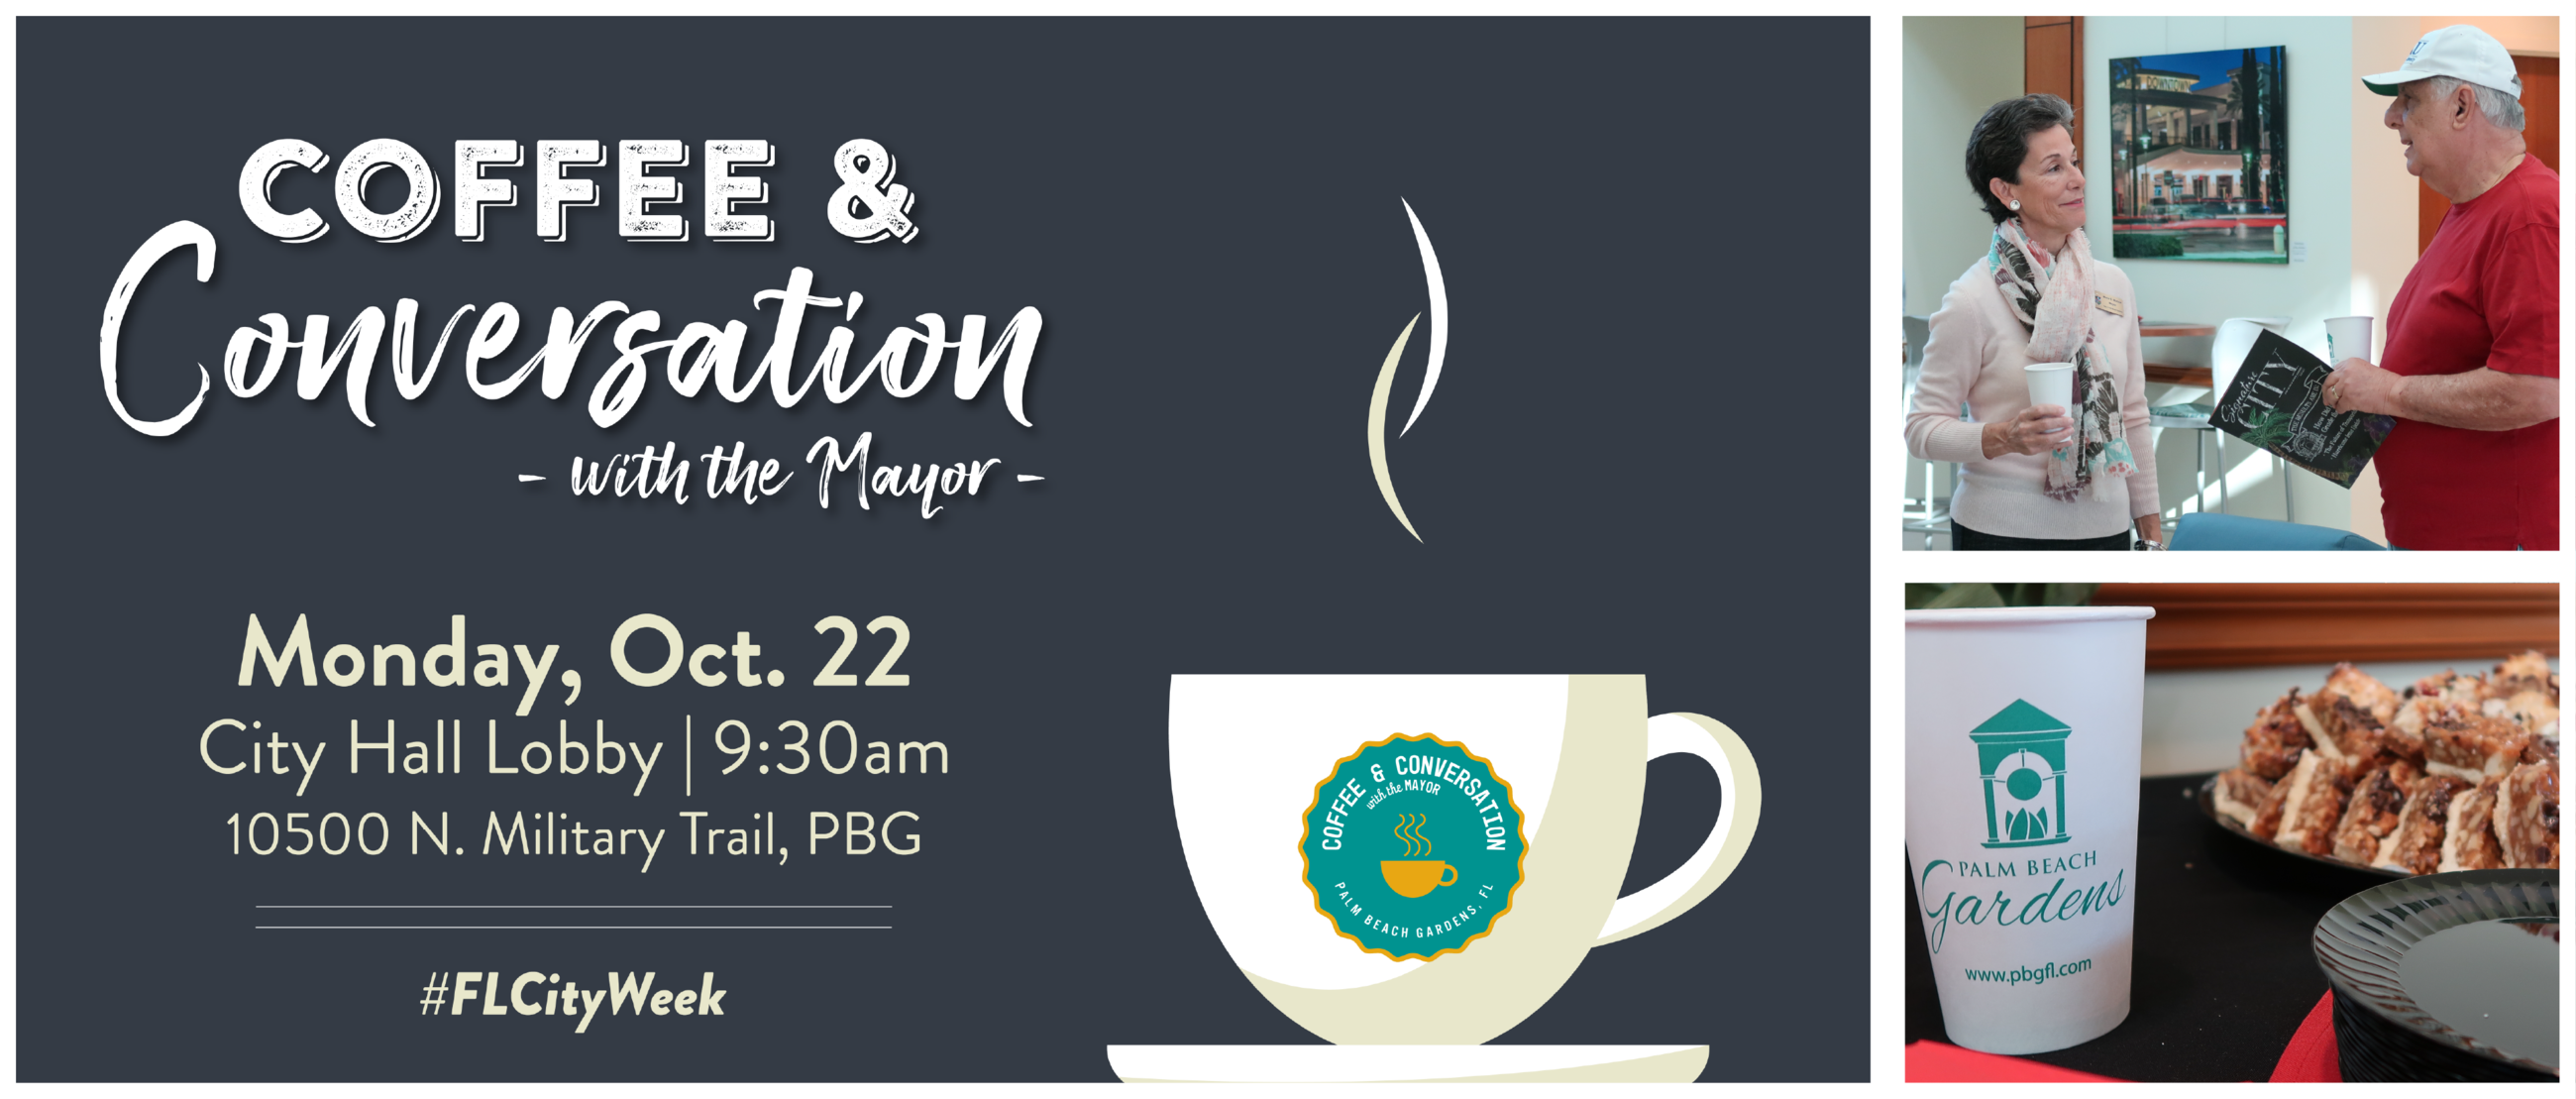 graphic link to Coffee and conversation with the mayor event page